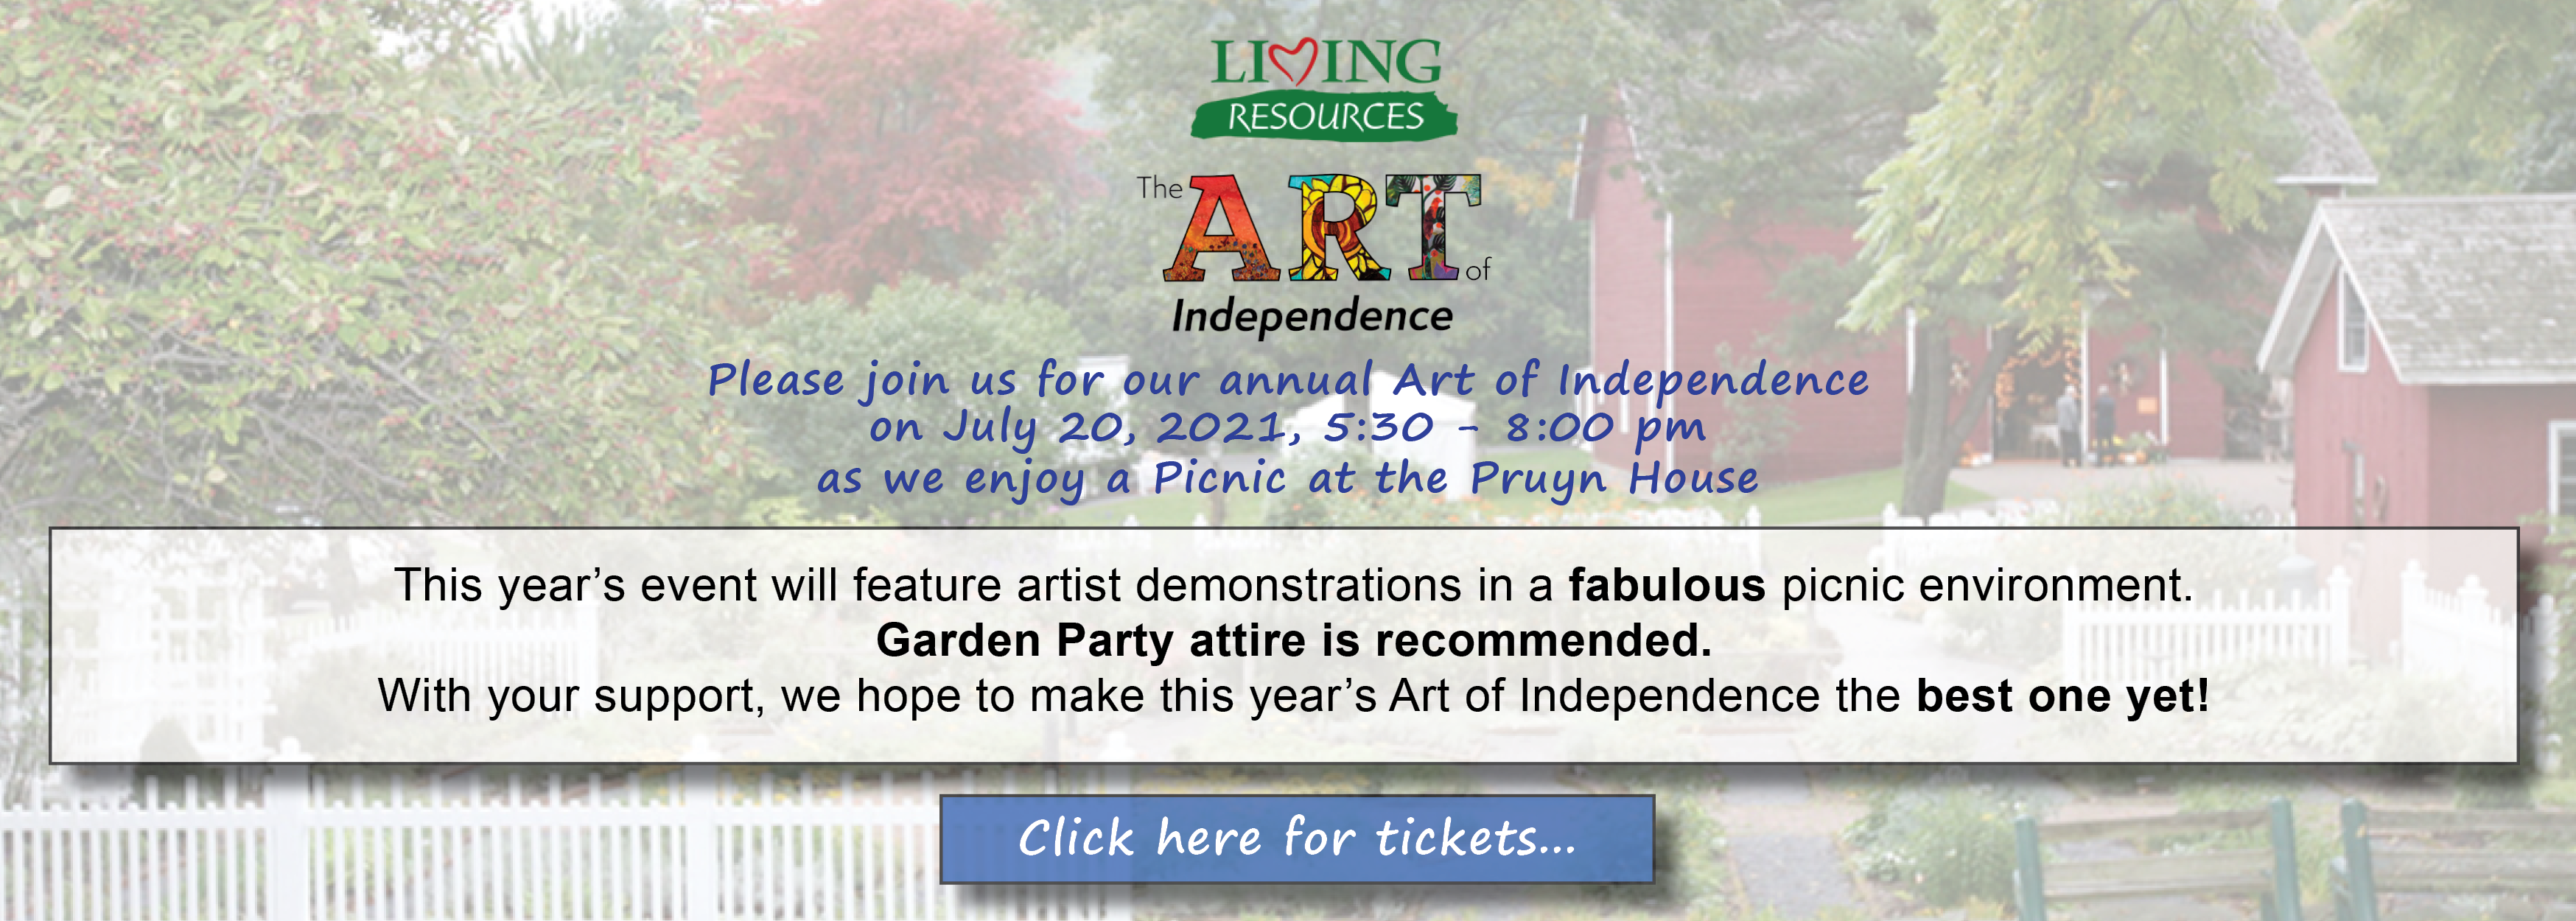 Living Resources' Art of Independence 2020